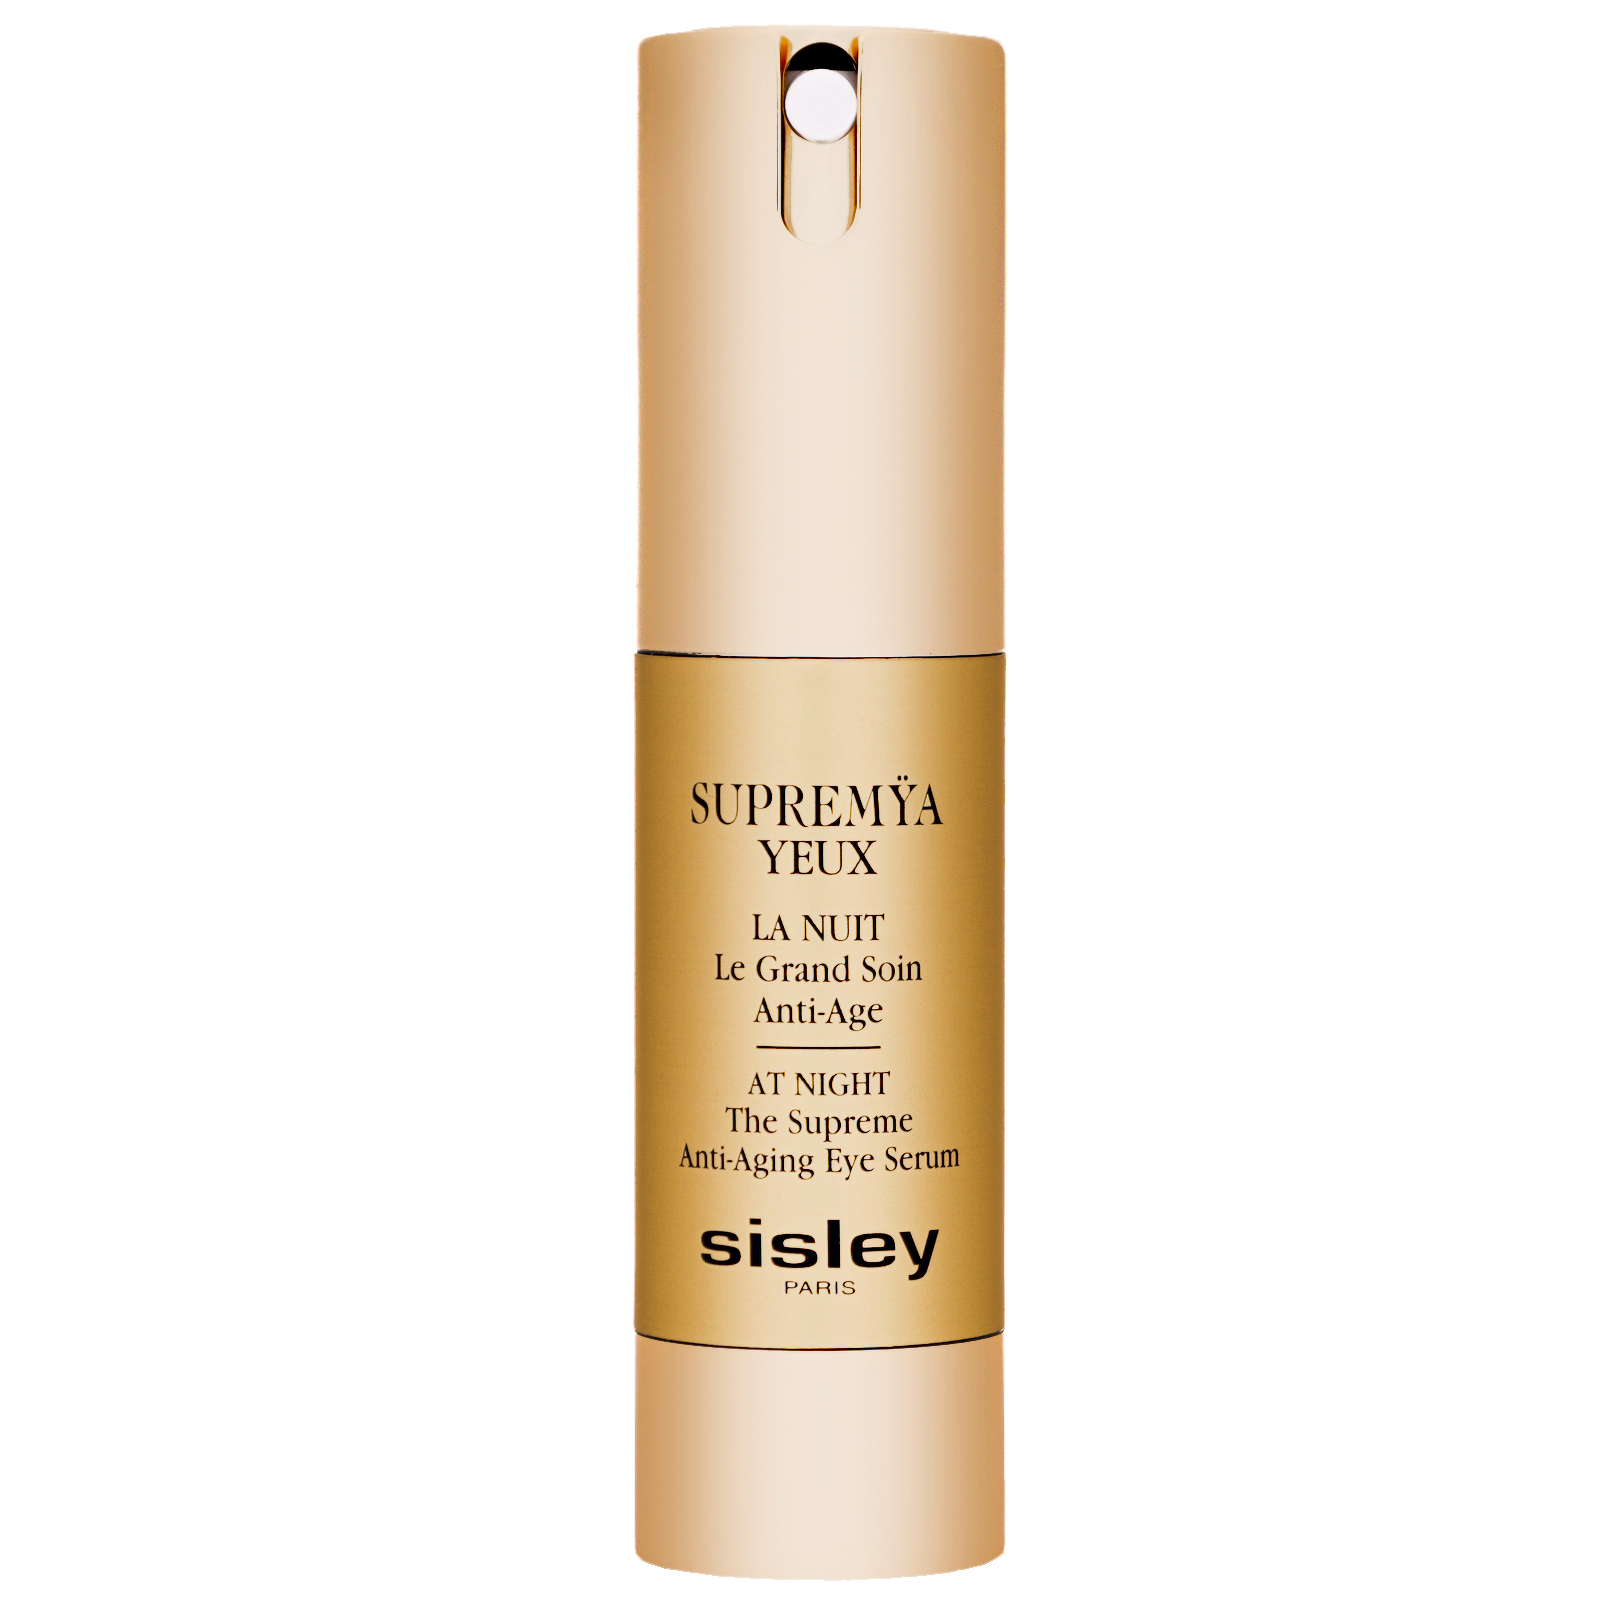 Sisley Supremÿa Yeux At Night The Supreme Anti Aging Eye Serum 15ml